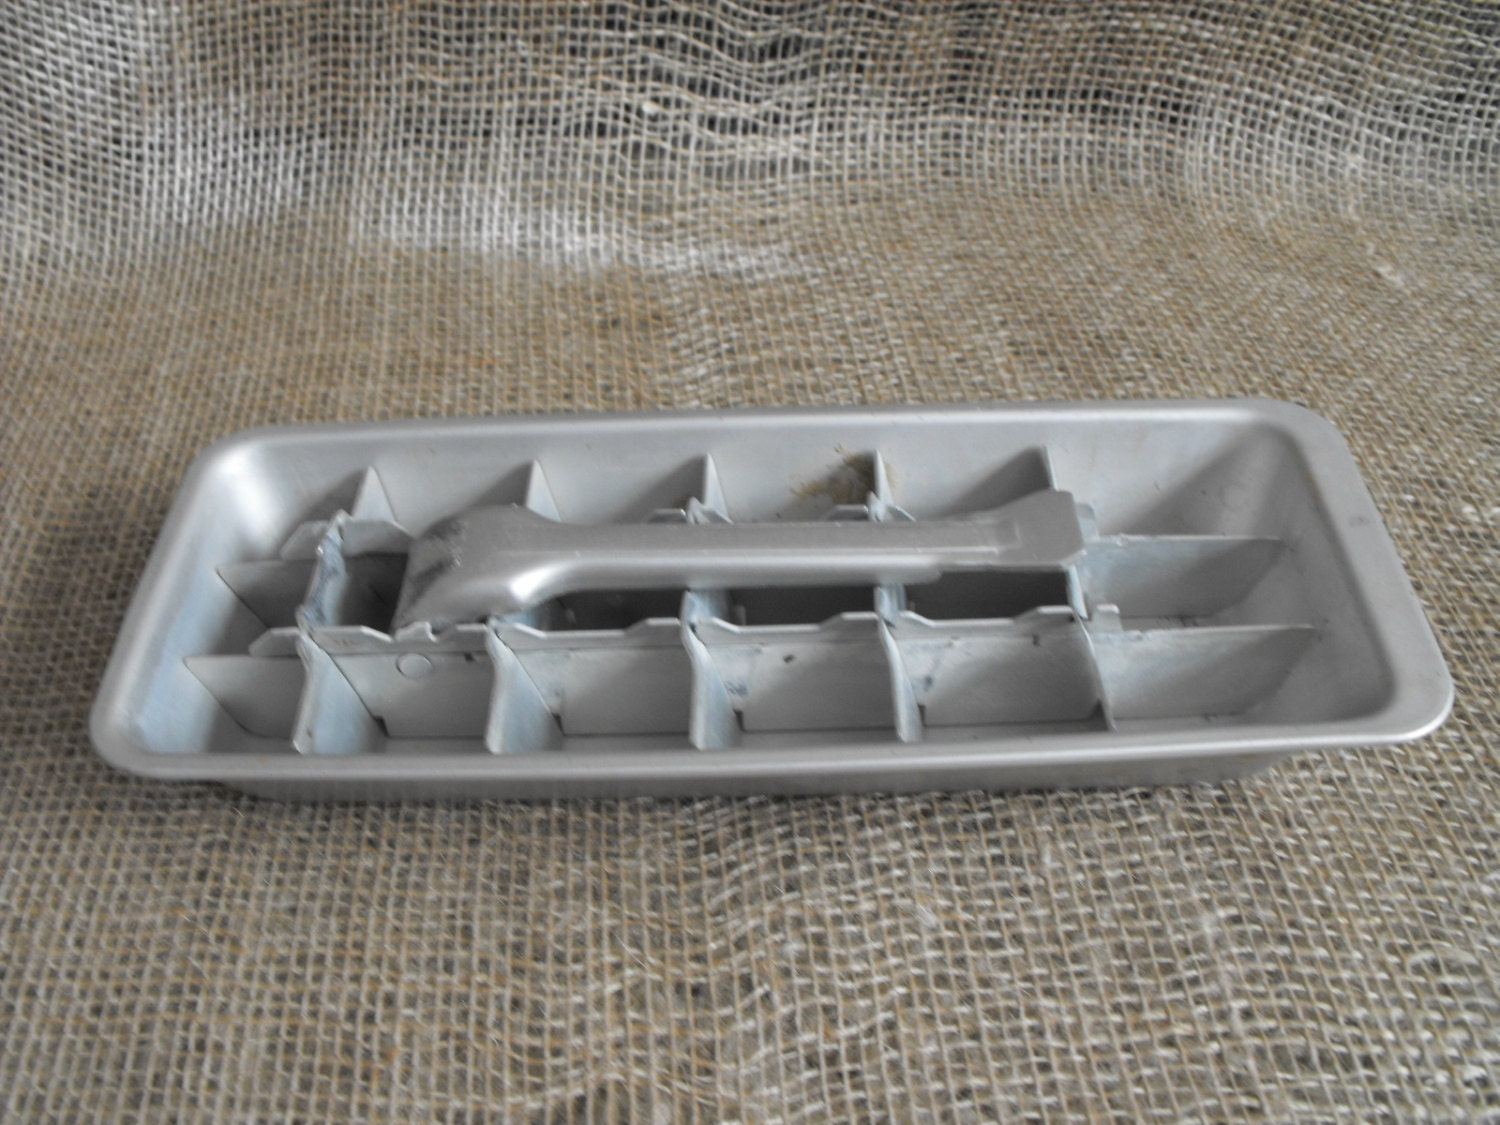 Ice tray vintage aluminum retro kitchen utensil - QuarryDesignsToo